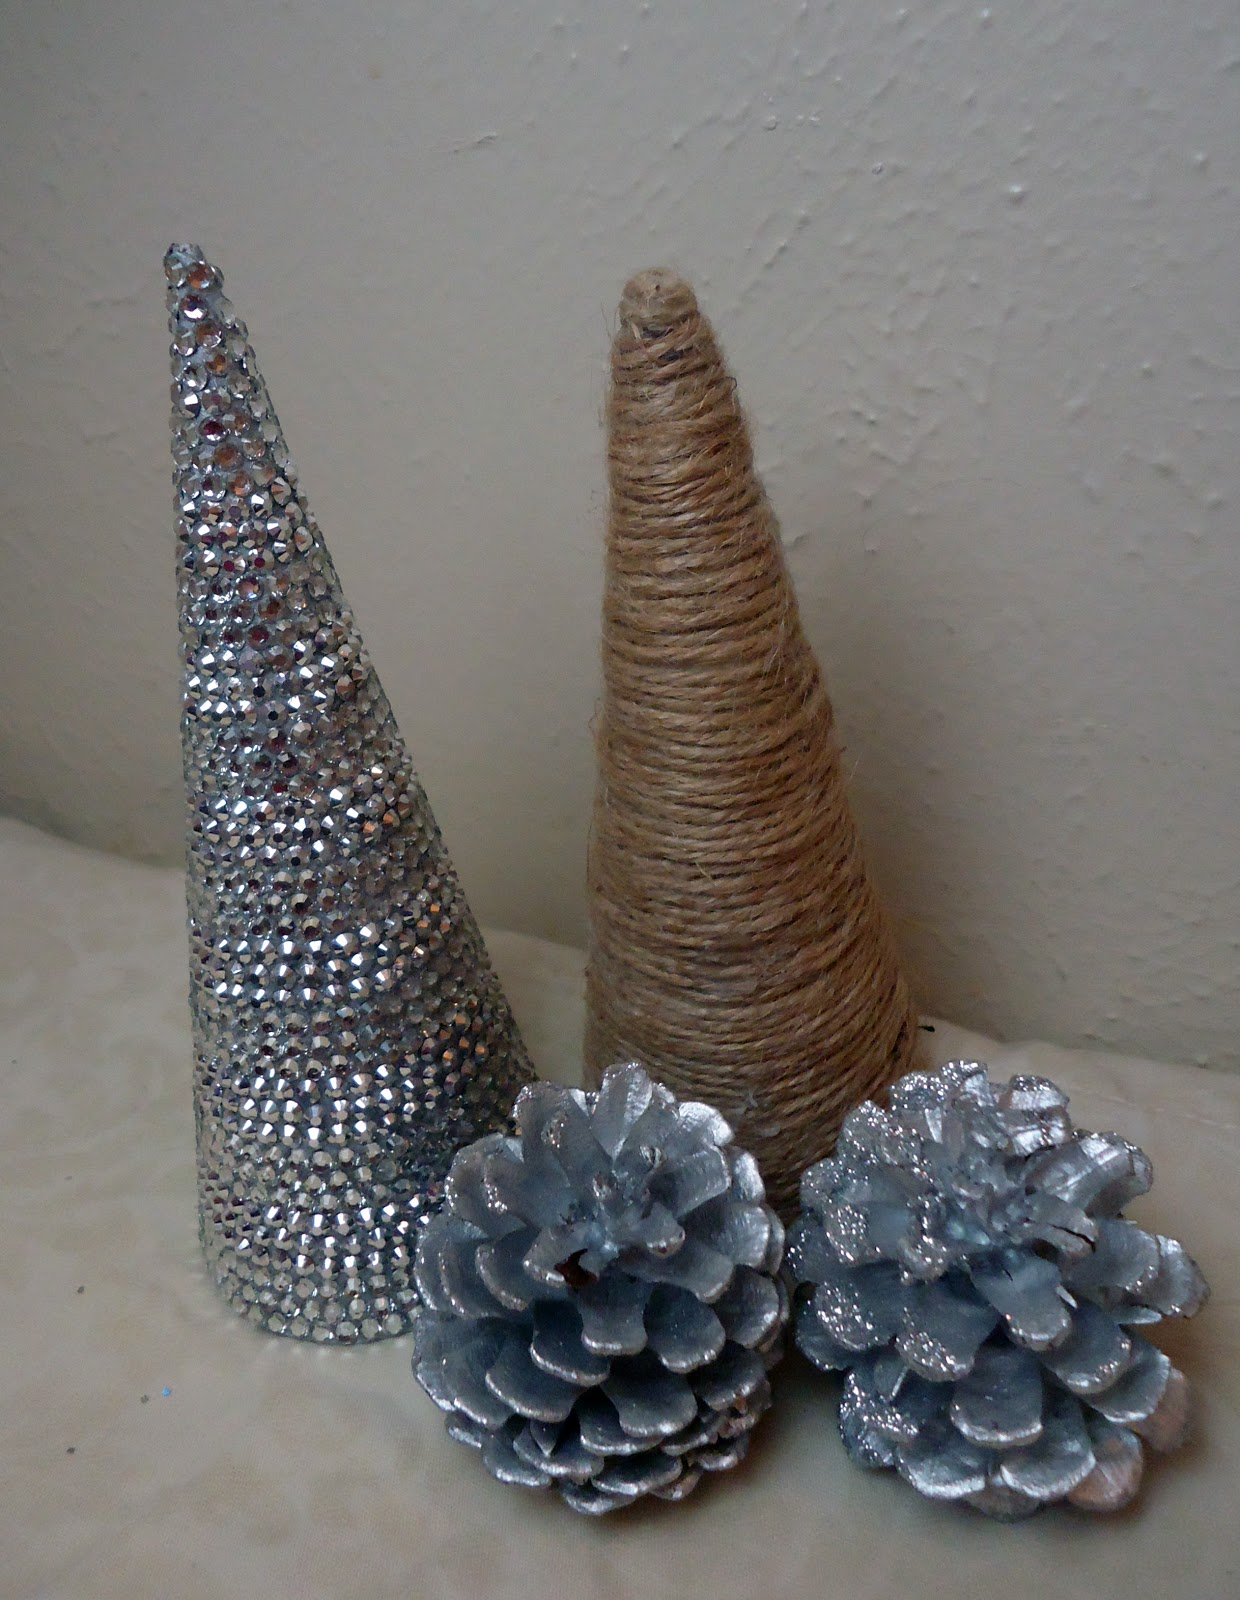 Frugal Home Design: DIY Cone Shaped Christmas Trees